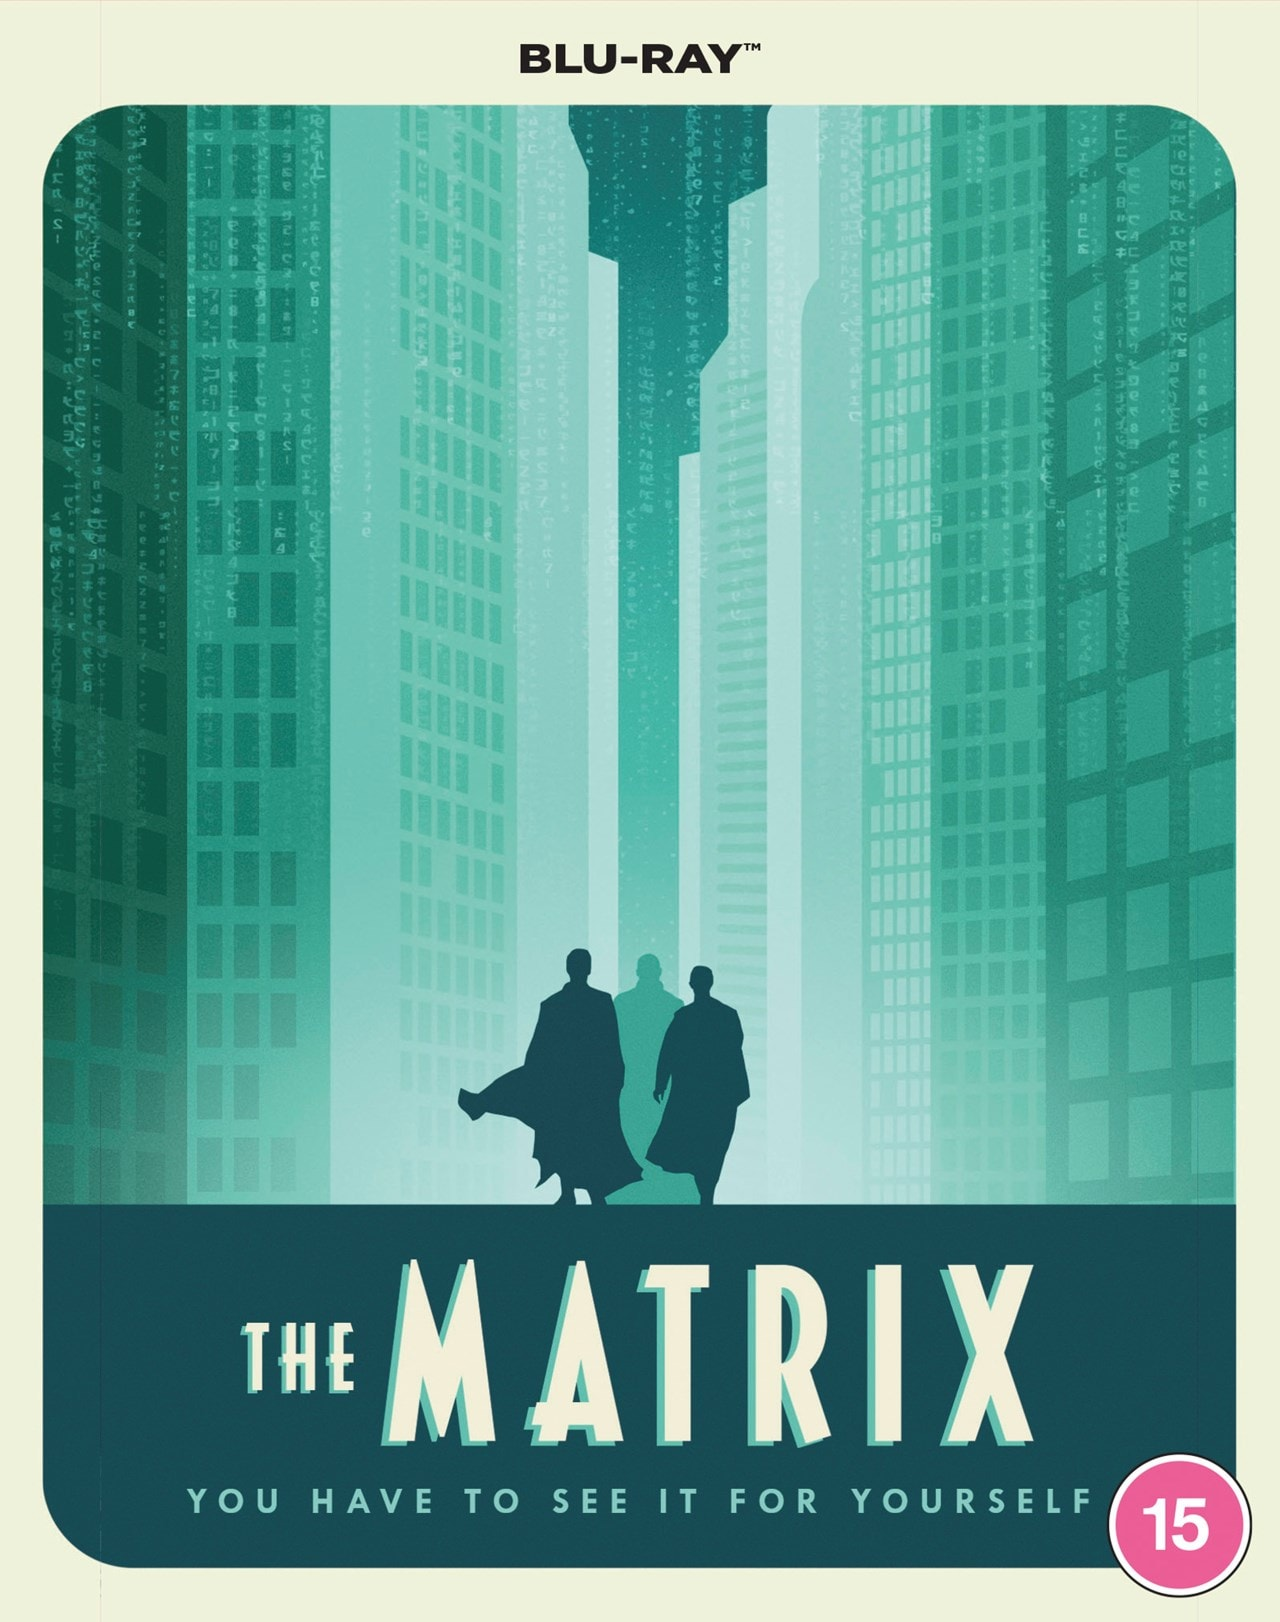 The Matrix - Travel Poster Edition - 2